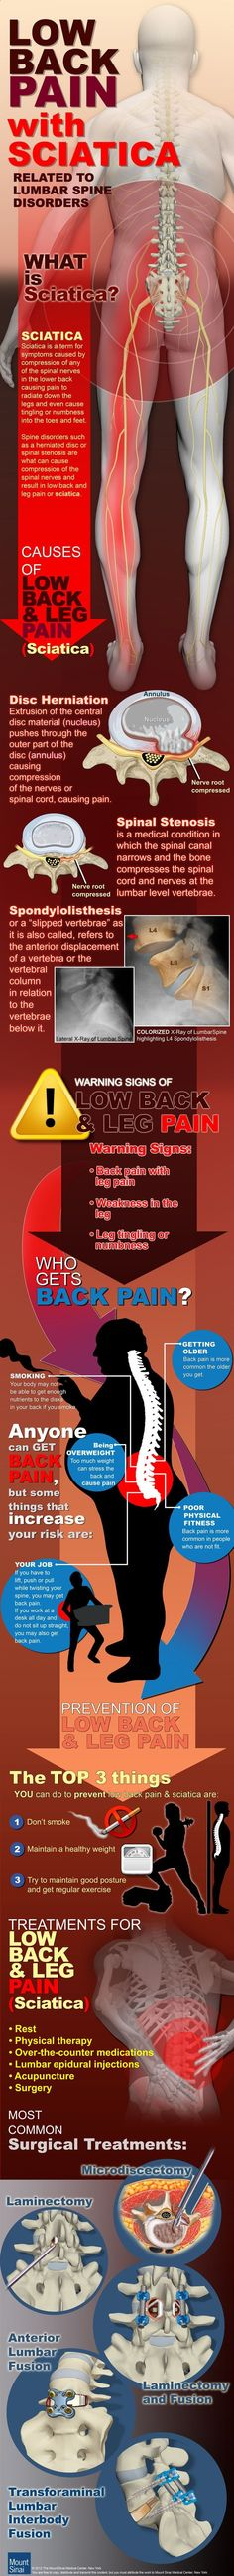 Low Back Pain with Sciatica - heres the TRUTH 60% back surgeries are UNnecessary - 95% of people with multiple back surgeries have not gone back to work 4 yrs later Back surgeries are so bad there is a medical term- FBSS failed back surgery syndrome -17% procedure error - 4-36% iatrogenic injury - 5-6% nosocomial infection - 2% serious drug reaction What is successful - surgeons may quote 98% for fusion surgery. Define success as pain relief and it drops to 74% - for single fusion for ...